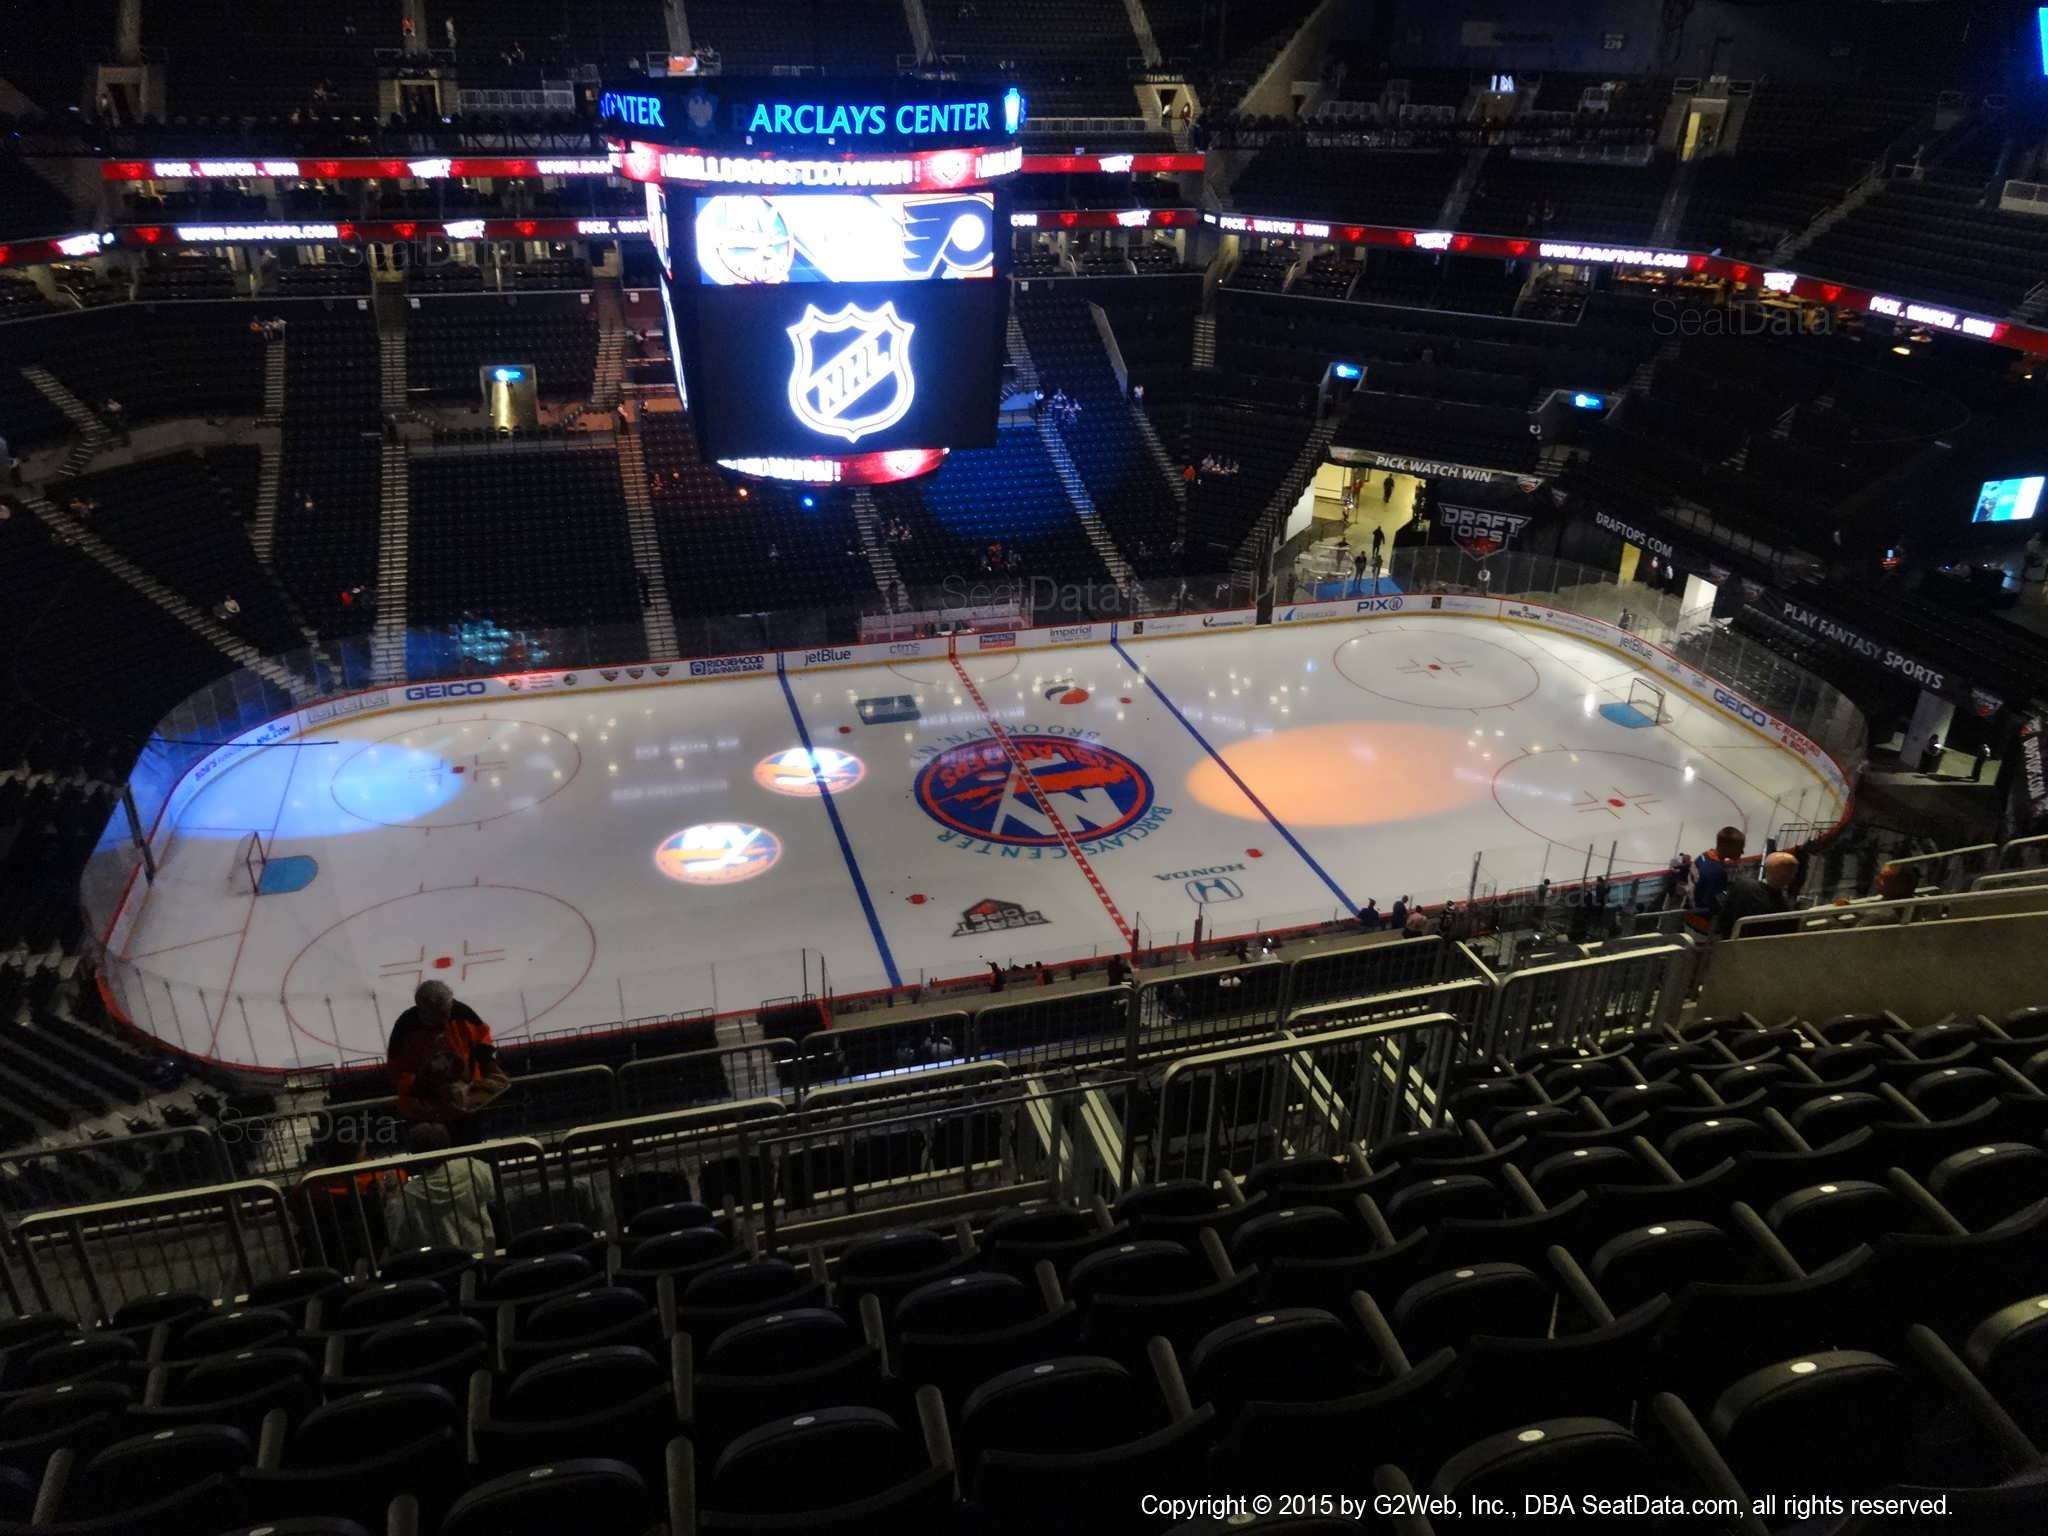 Seat View from Section 209 at the Barclays Center, home of the New York Islanders